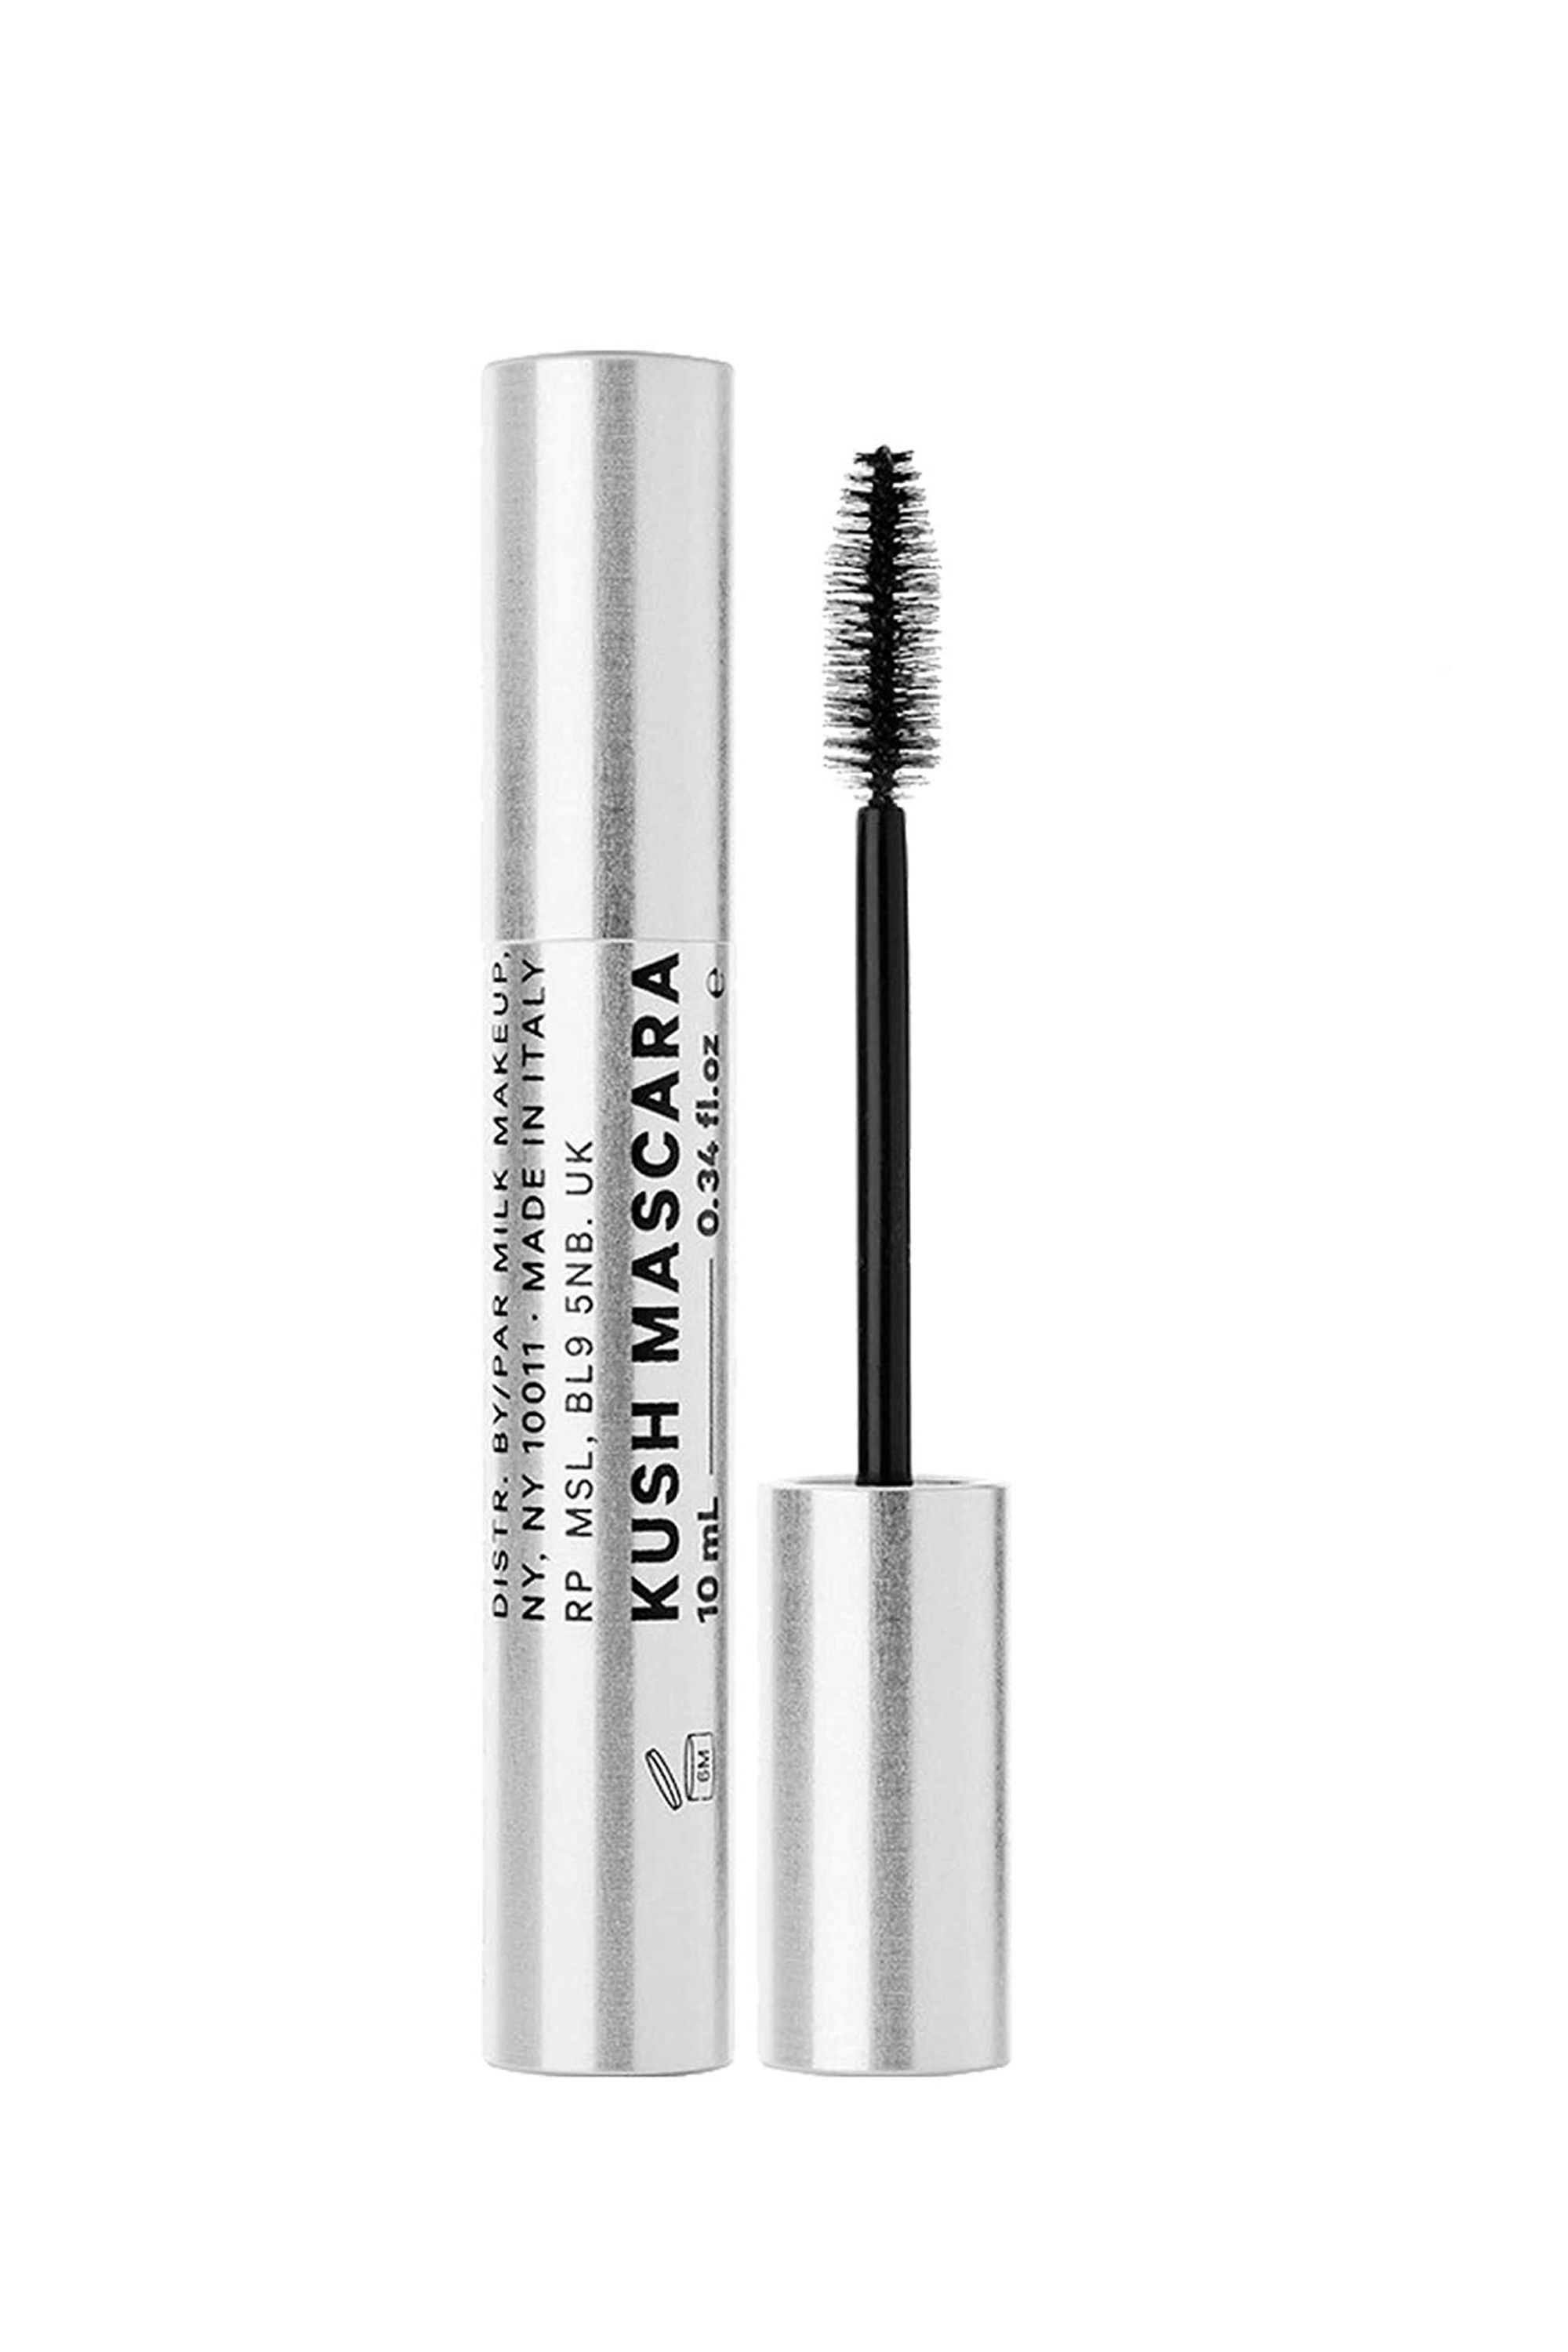 """Kush High Volume Mascara Milk Makeup sephora.com $24.00 SHOP NOW """"I really didn't care for any of the cannabis-infused beauty products being released at lightspeed but Milk Makeup's Kush Mascara is THE TRUTH. One swipe of this gave my little eyelash hairs more volume than I could ever imagine. Plus, I can layer without clumping or smudging."""" — Nerisha Penrose, Associate Editor"""